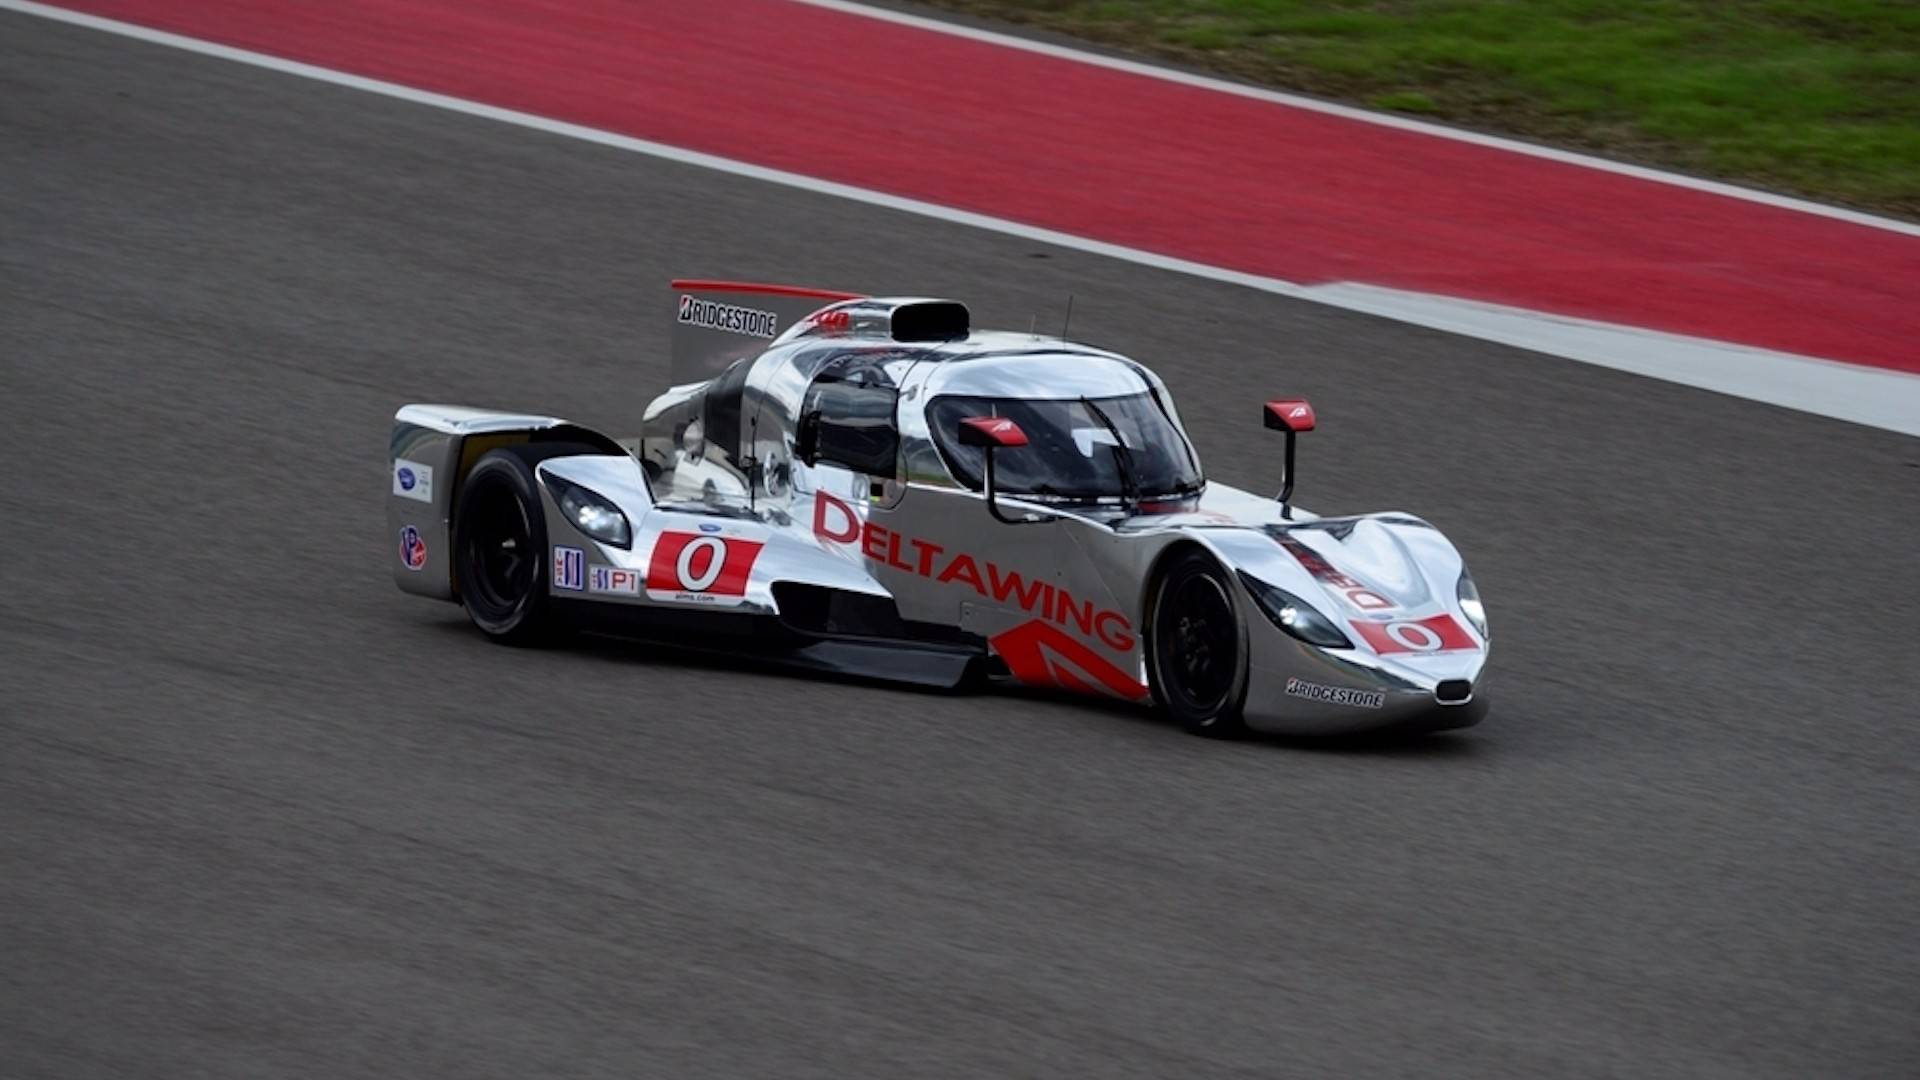 DeltaWing 2013 for sale (13)